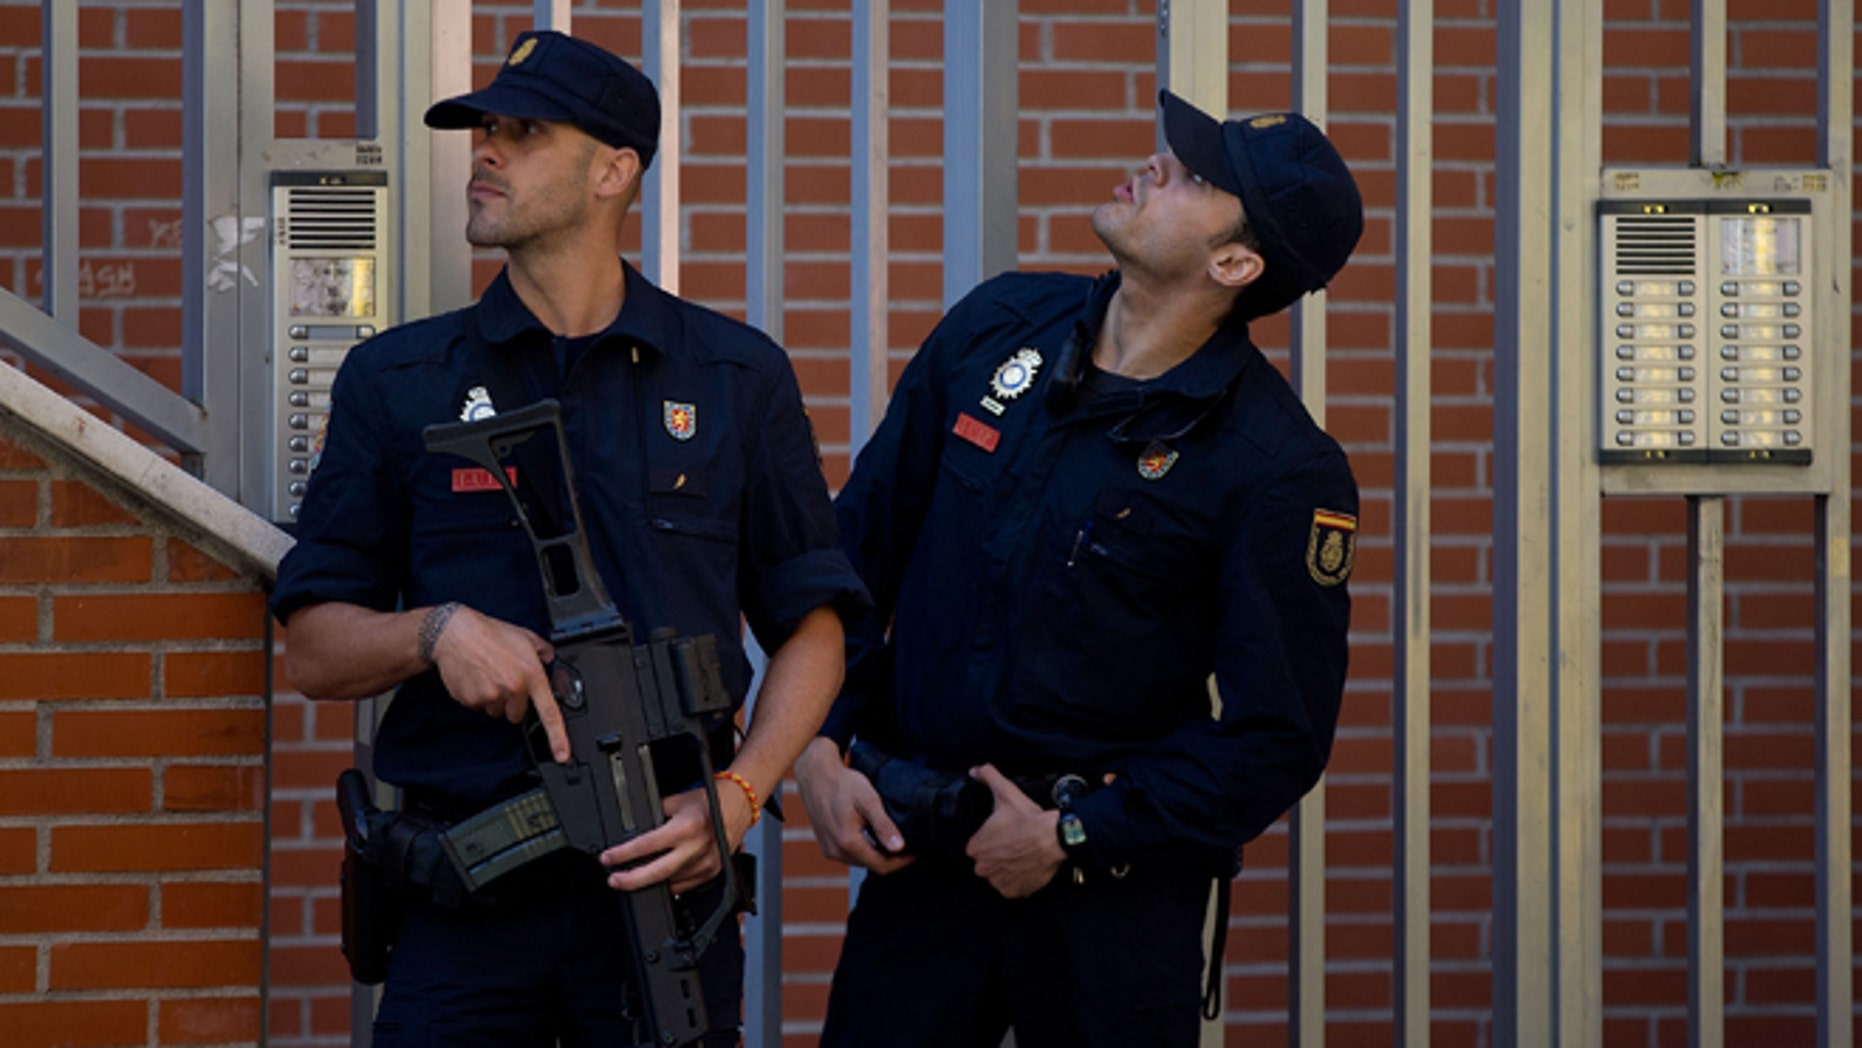 MADRID, SPAIN - JUNE 16:  Two Spanish policemen guard a residence at Rutilo street during an operation against an international Jihadist recruiting network on June 16, 2014 in Madrid, Spain. Spanish Police this morning made eight arrests in raids against an Islamist cell believed to be recruiting Jihadists to fight in Syria and Iraq for ISIL (Islamic State in Iraq and the Levant)Terrorist Group.  (Photo by Gonzalo Arroyo Moreno/Getty Images)